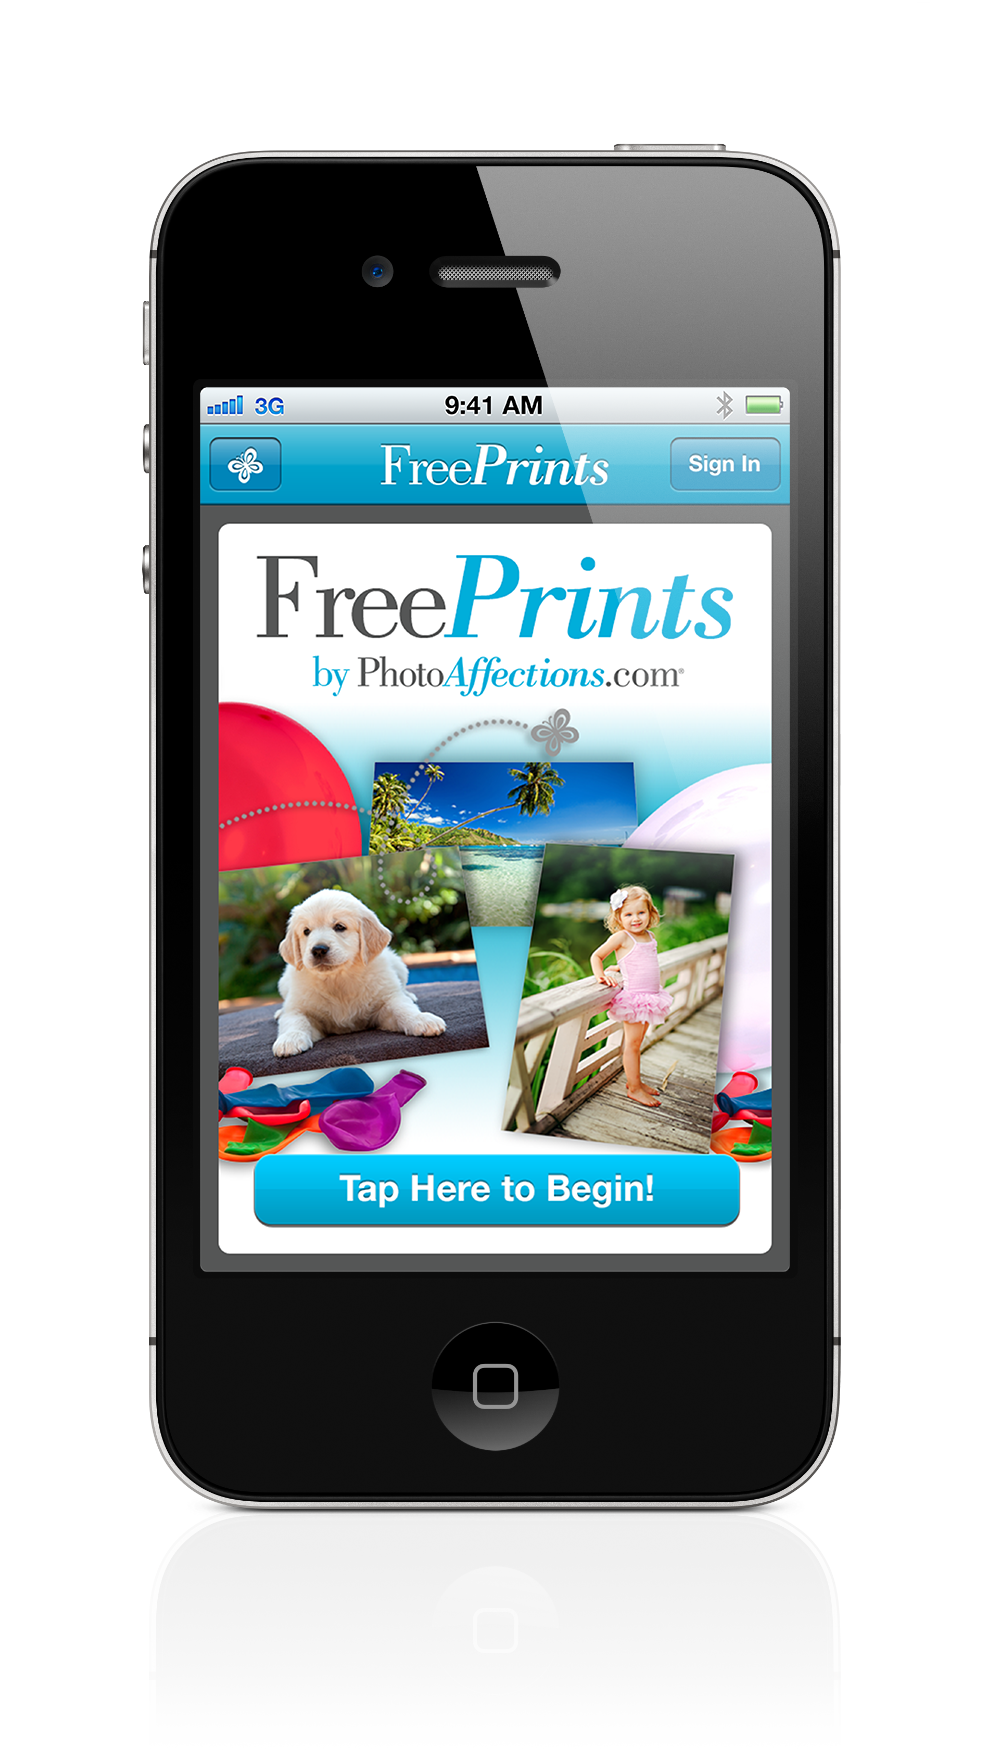 freeprints app up to 85 free 4x6 prints per month mommies with cents